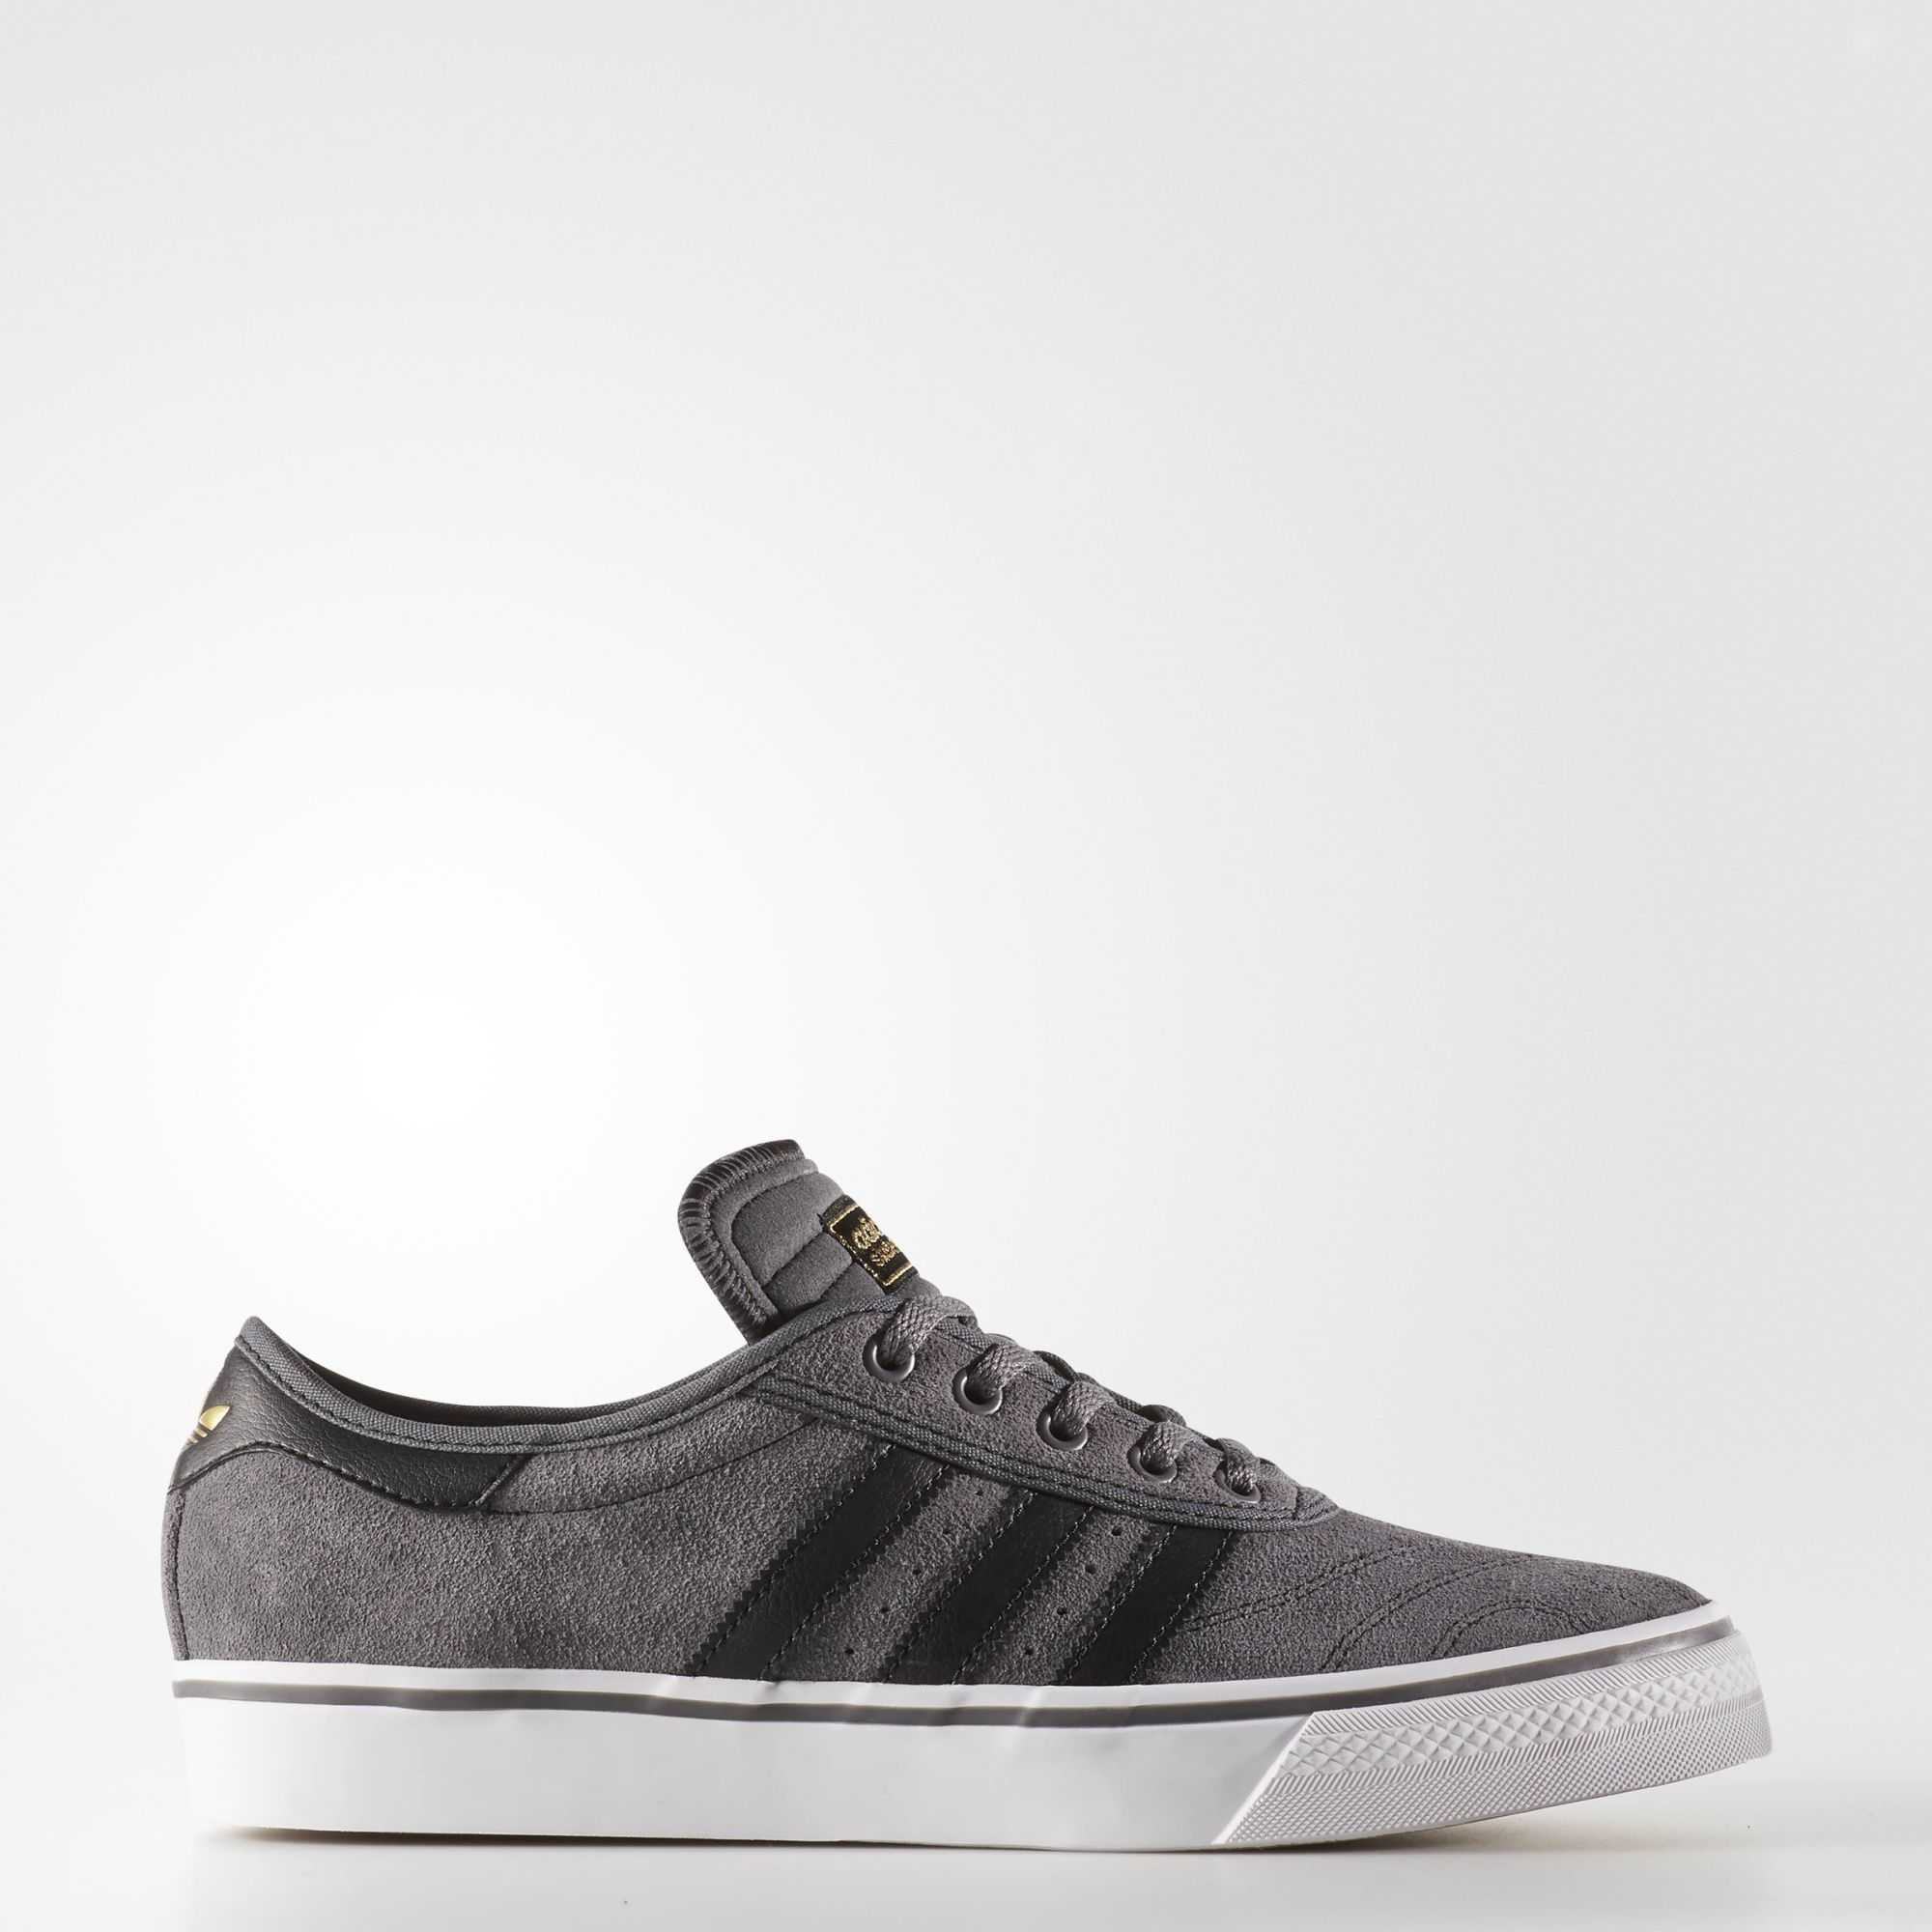 086ab9db6 BZ0204 Adidas Originals Superstar Boost Utility Black Classic Lifestyle New  Men